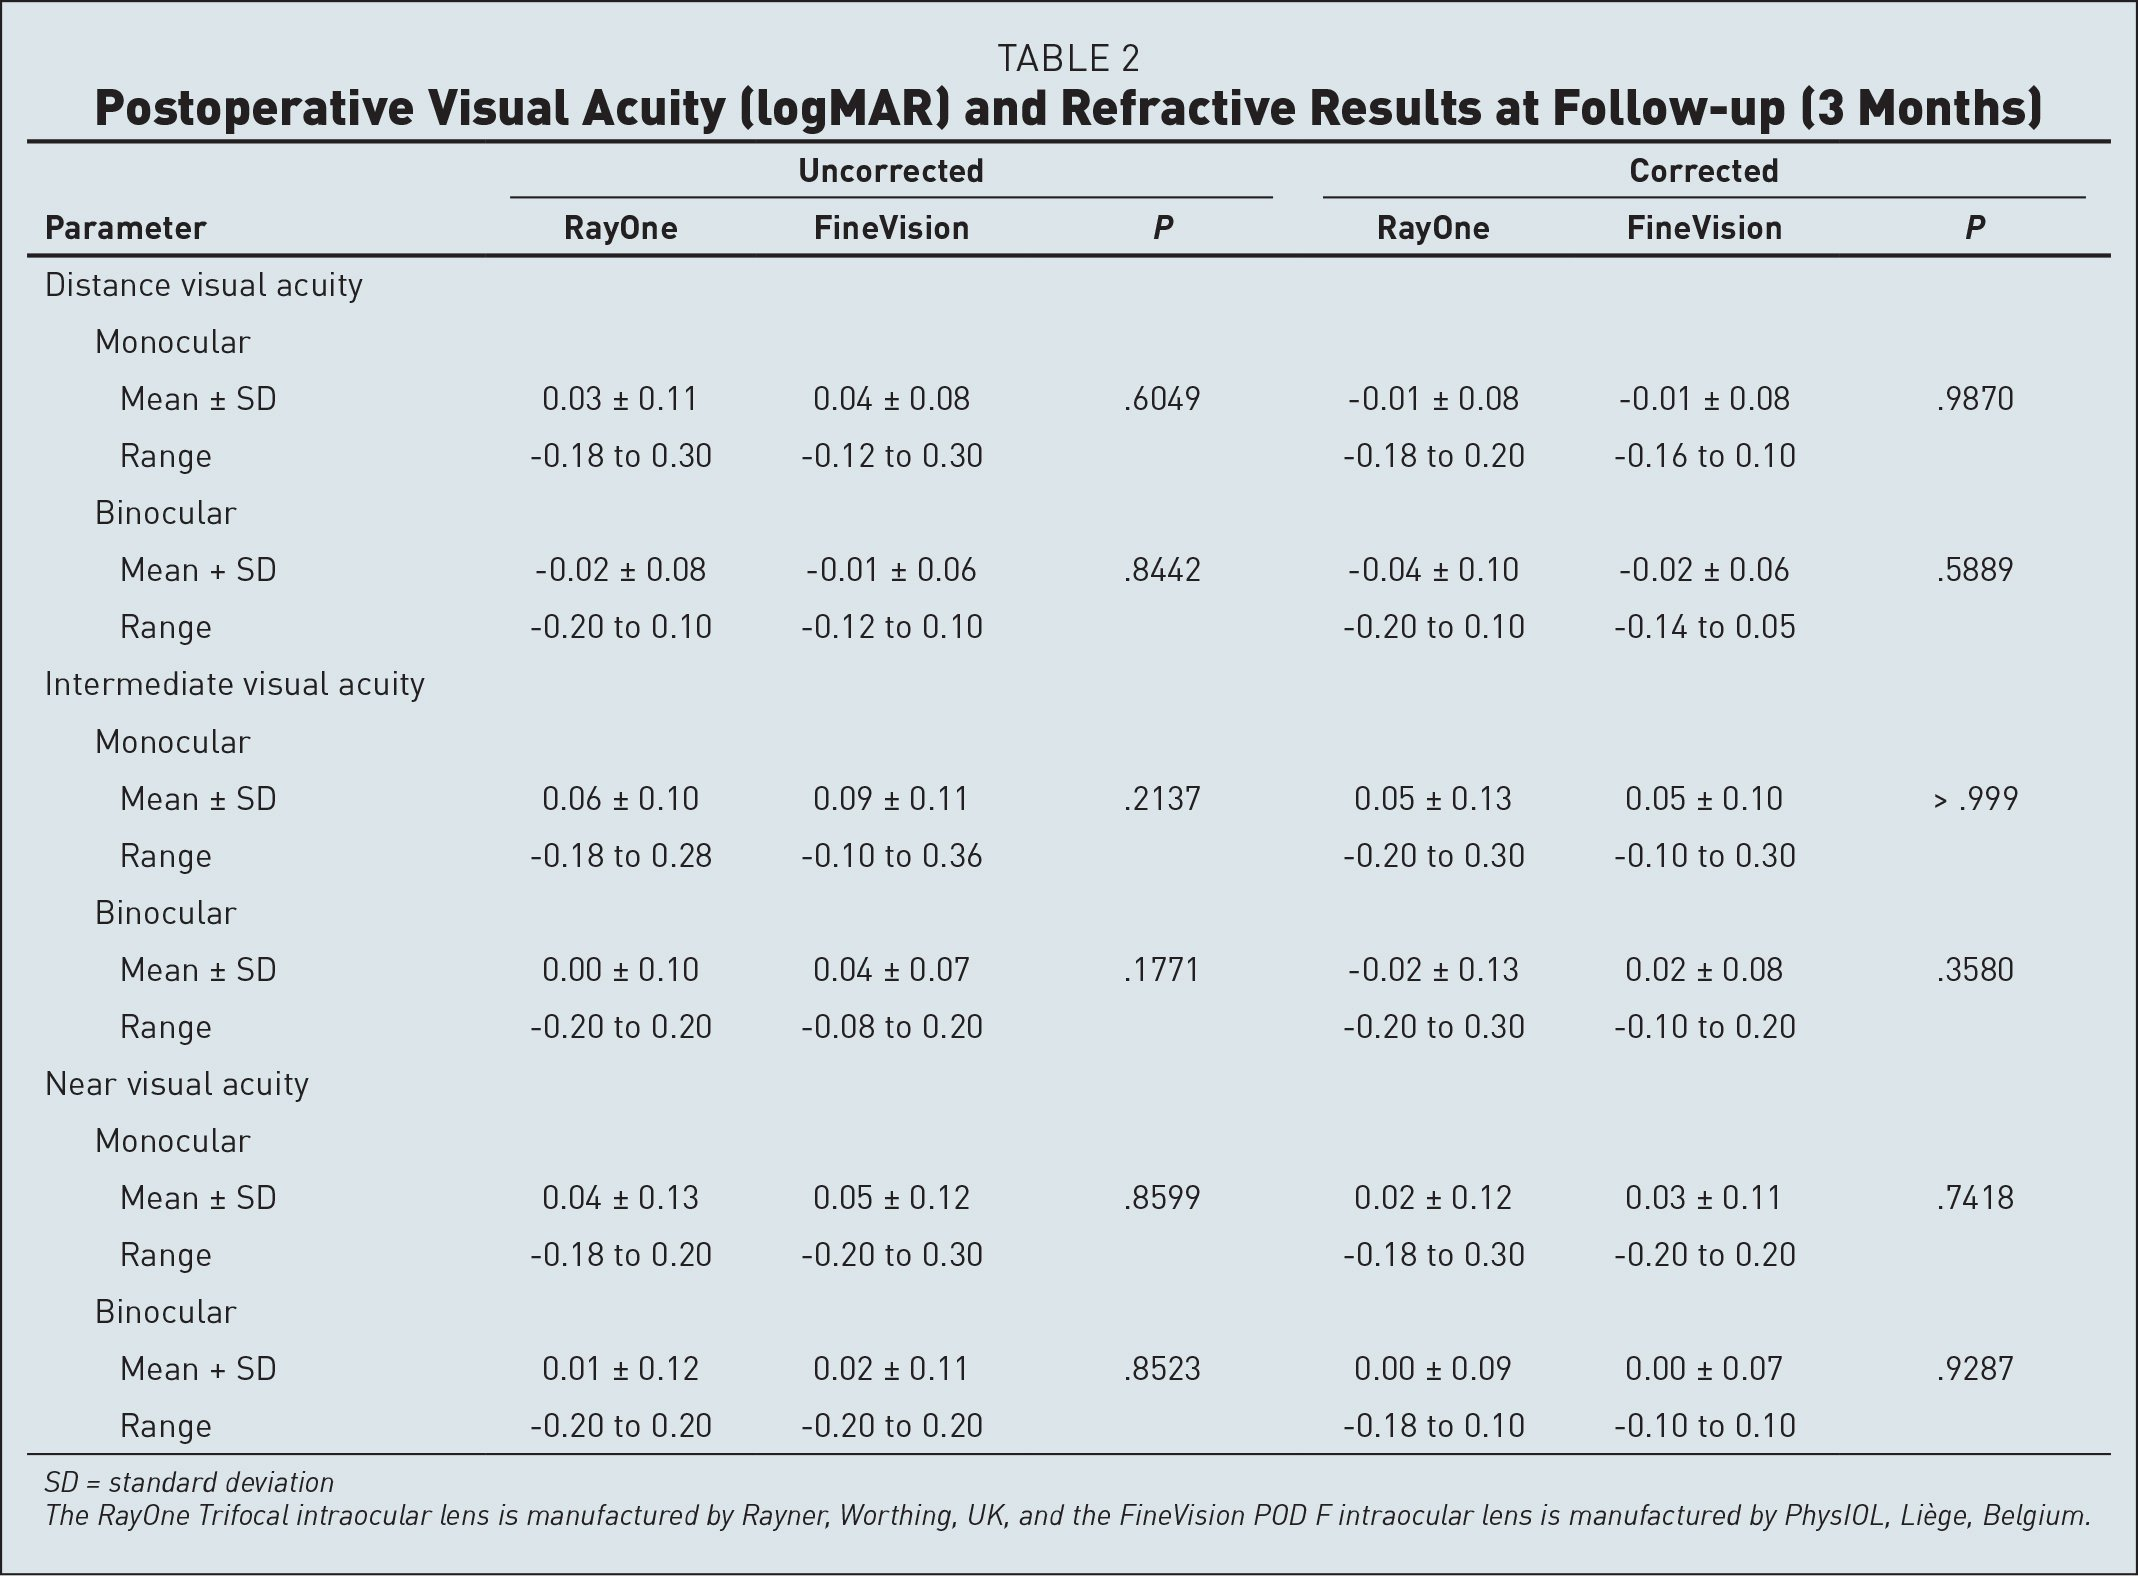 Postoperative Visual Acuity (logMAR) and Refractive Results at Follow-up (3 Months)